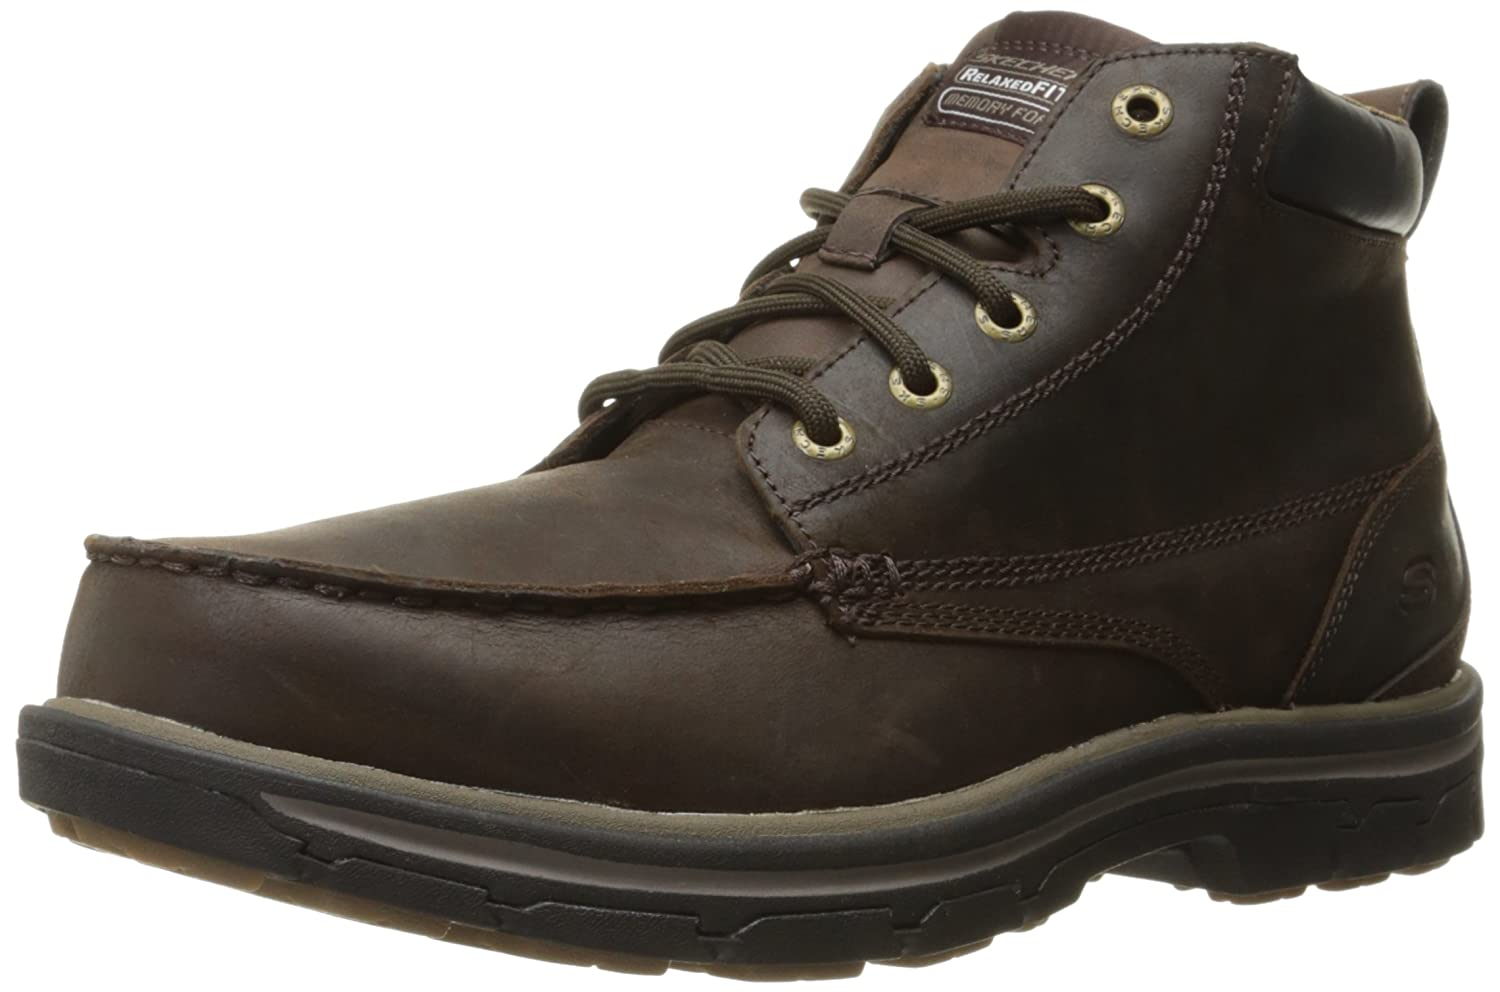 Skechers USA Men's Segment-Barillo Boot Skechers USA Footwear Mens 64265